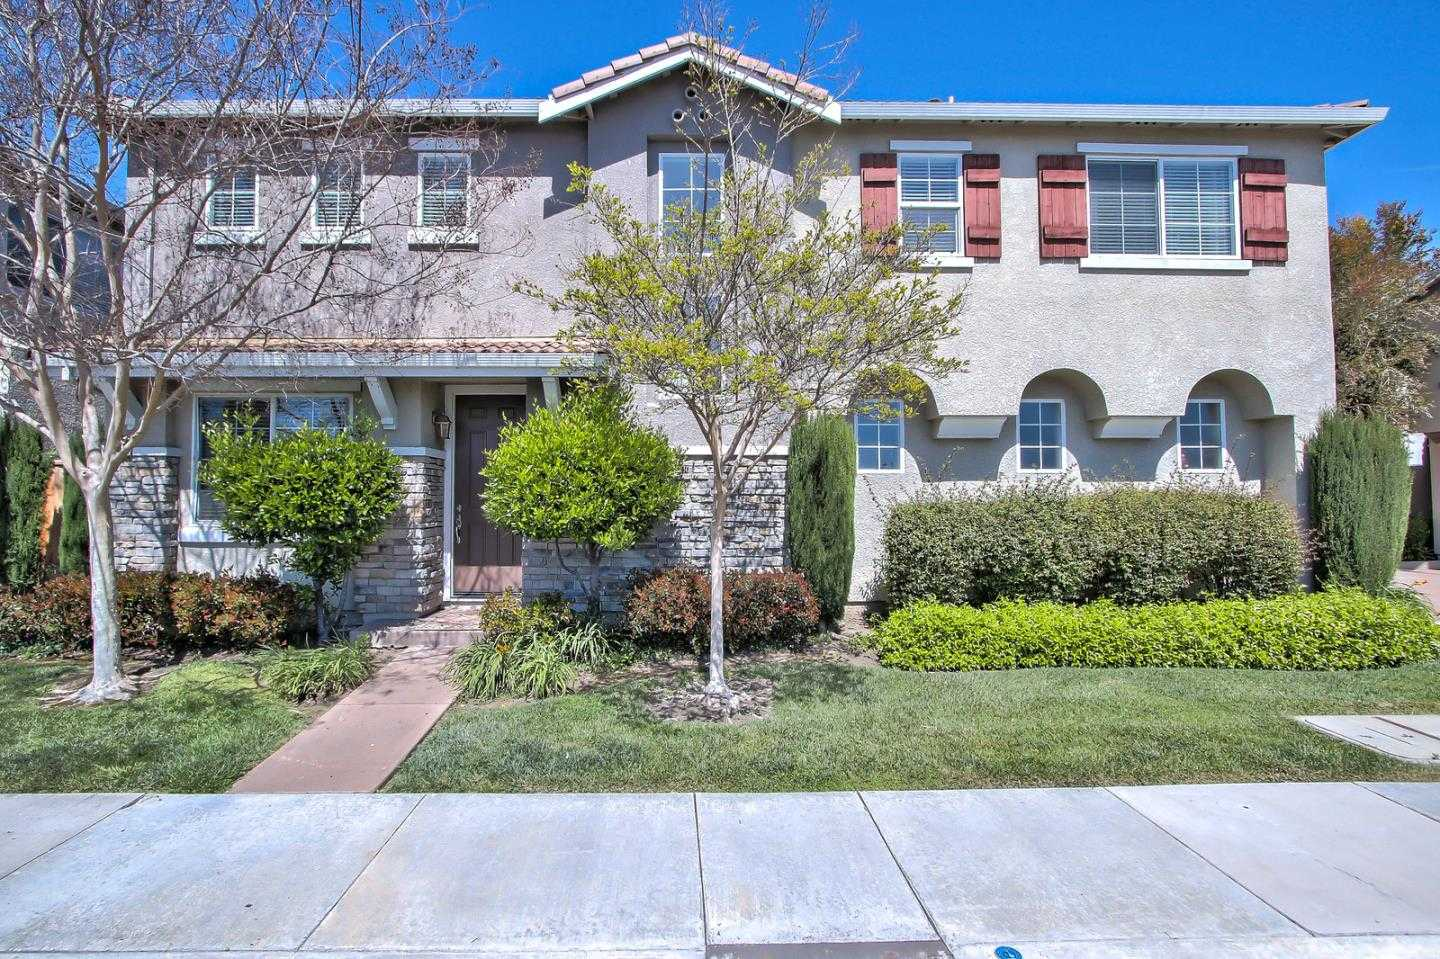 $1,350,000 - 4Br/3Ba -  for Sale in Santa Clara